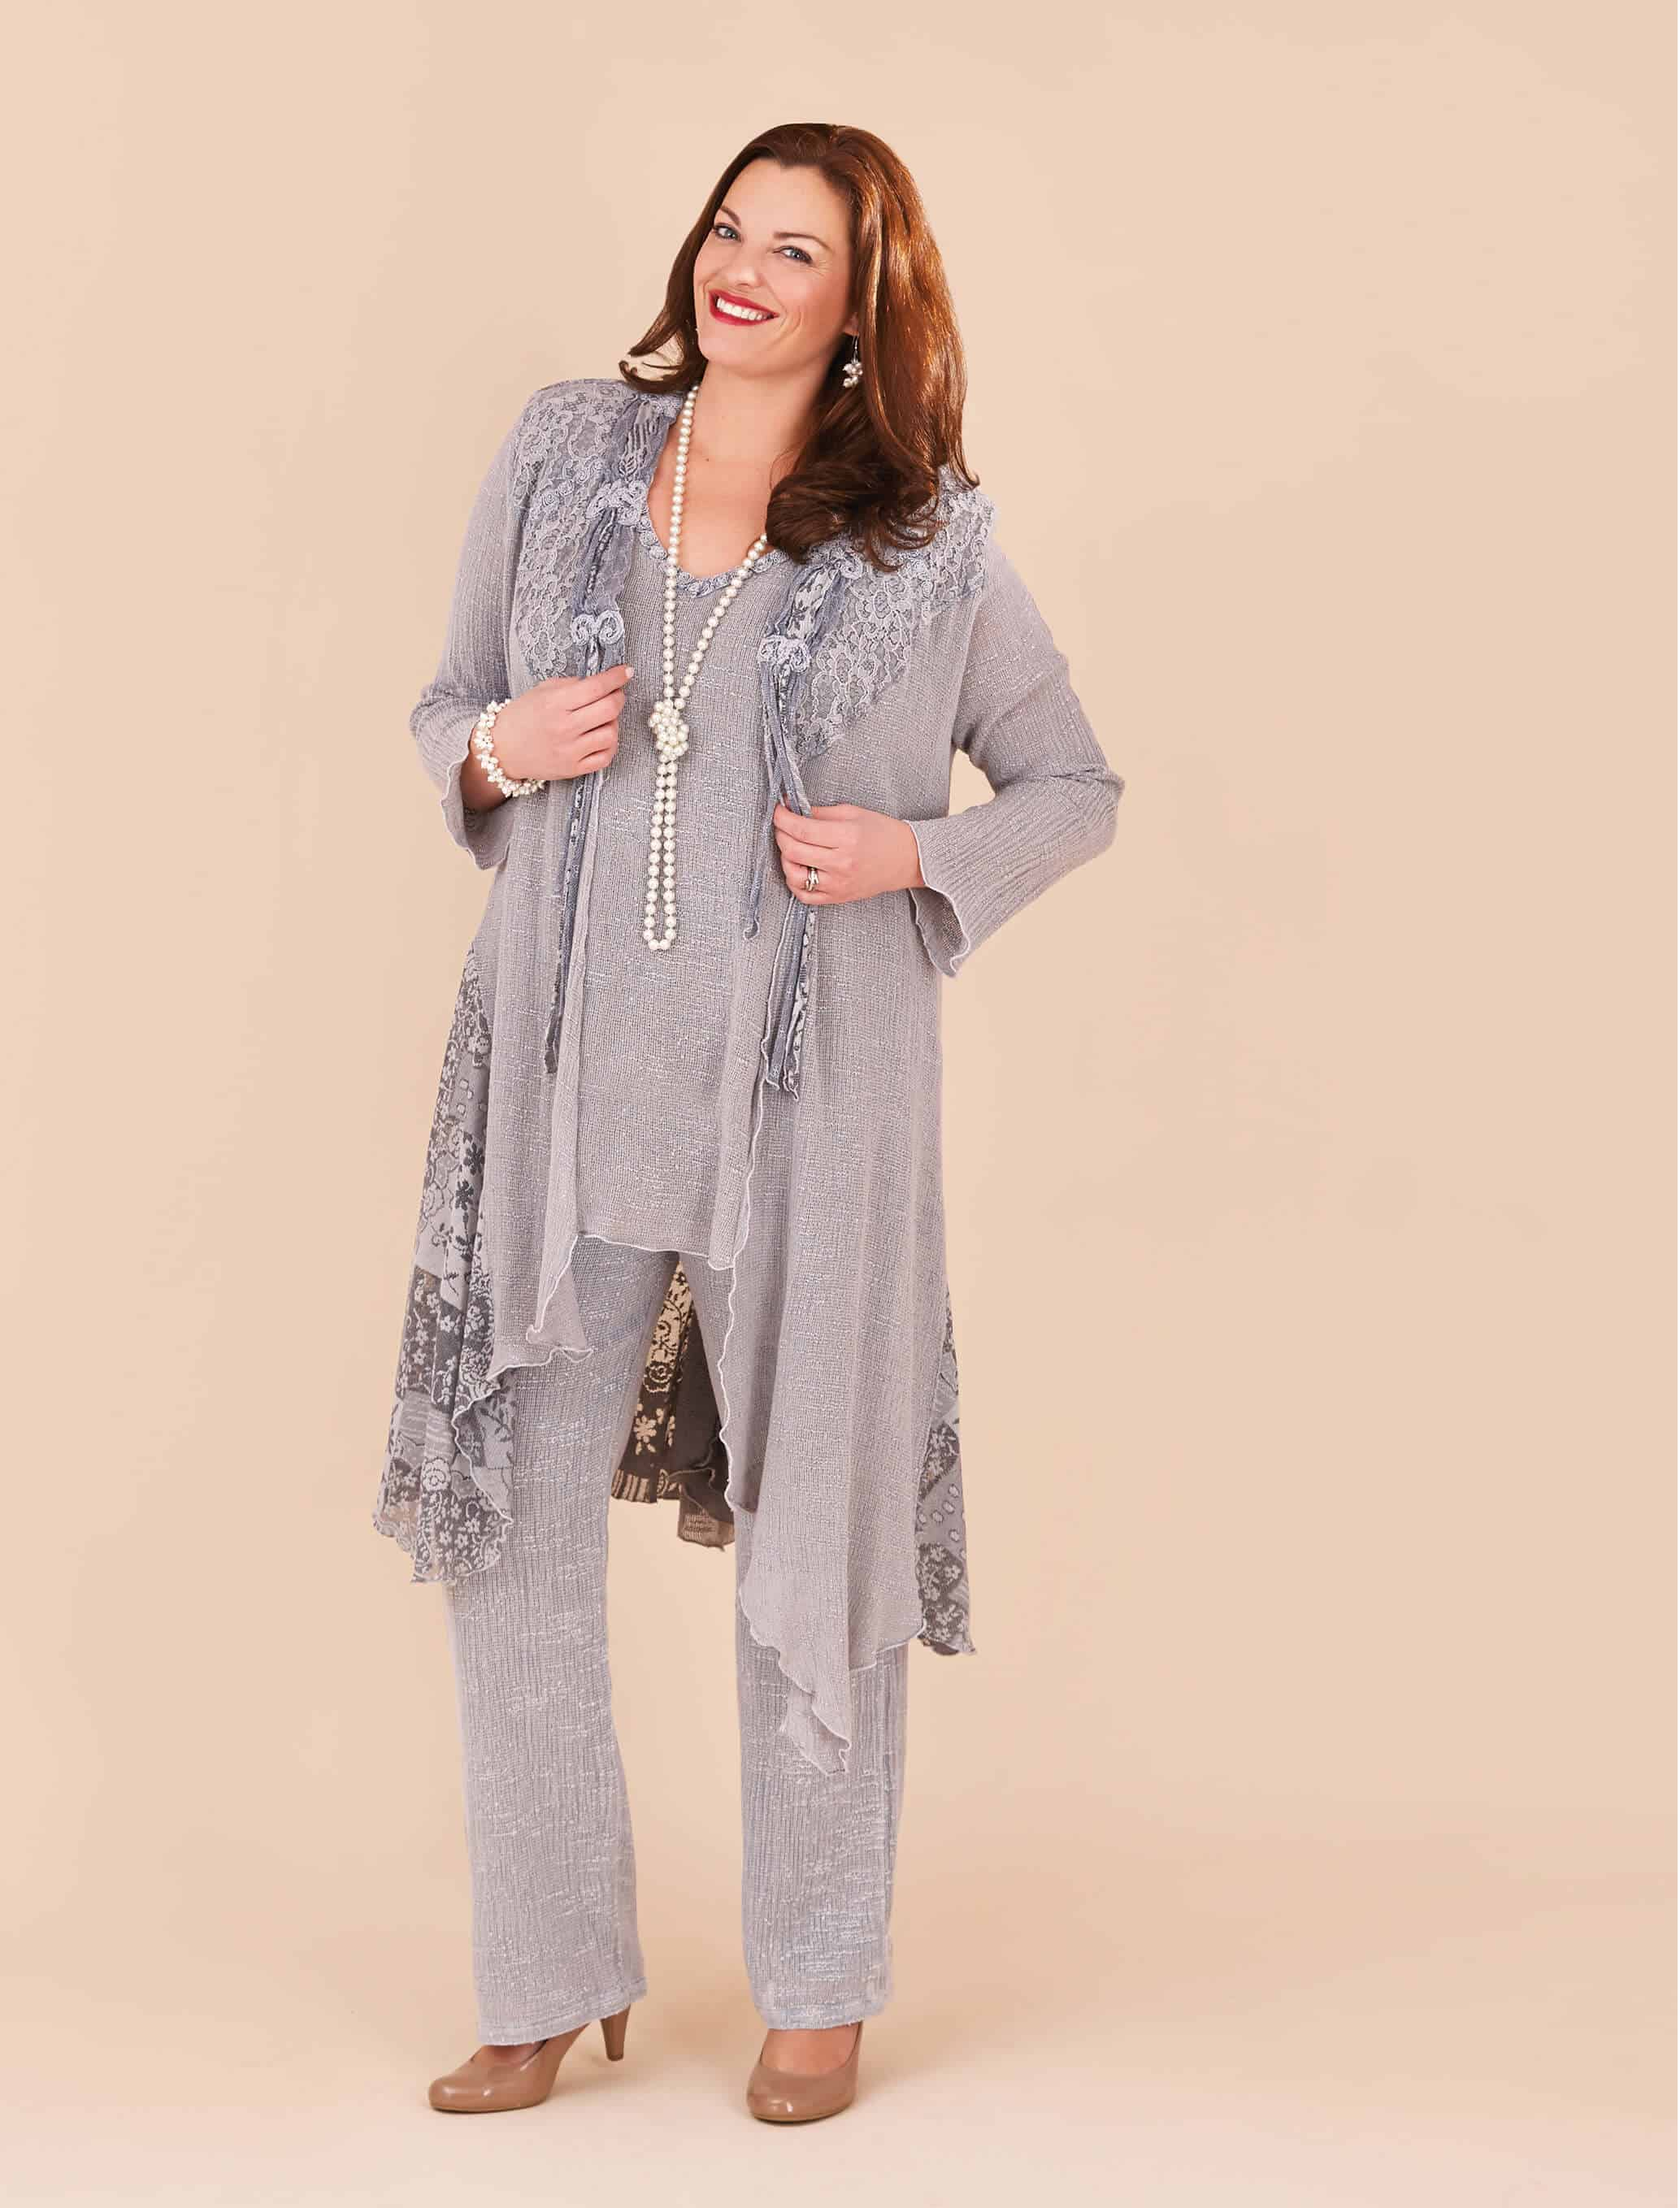 3 piece Italian lace trouser suit with water full coat.